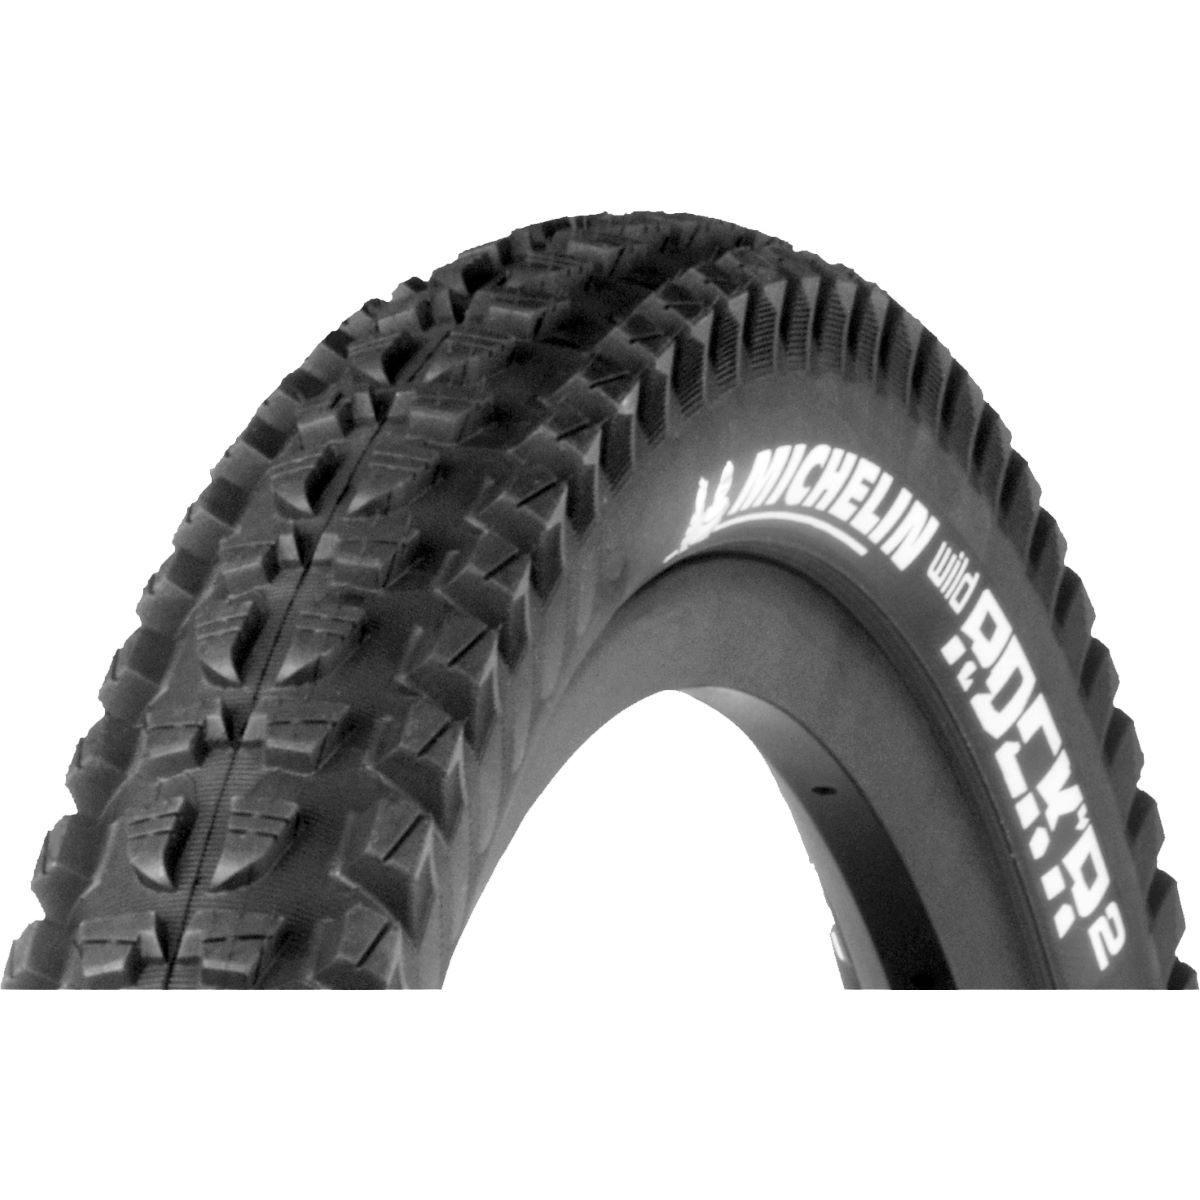 Pneu Michelin Wild Rock'r2 Advanced Reinforced Gum-X - 26 x 2.35 Noir Pneus VTT